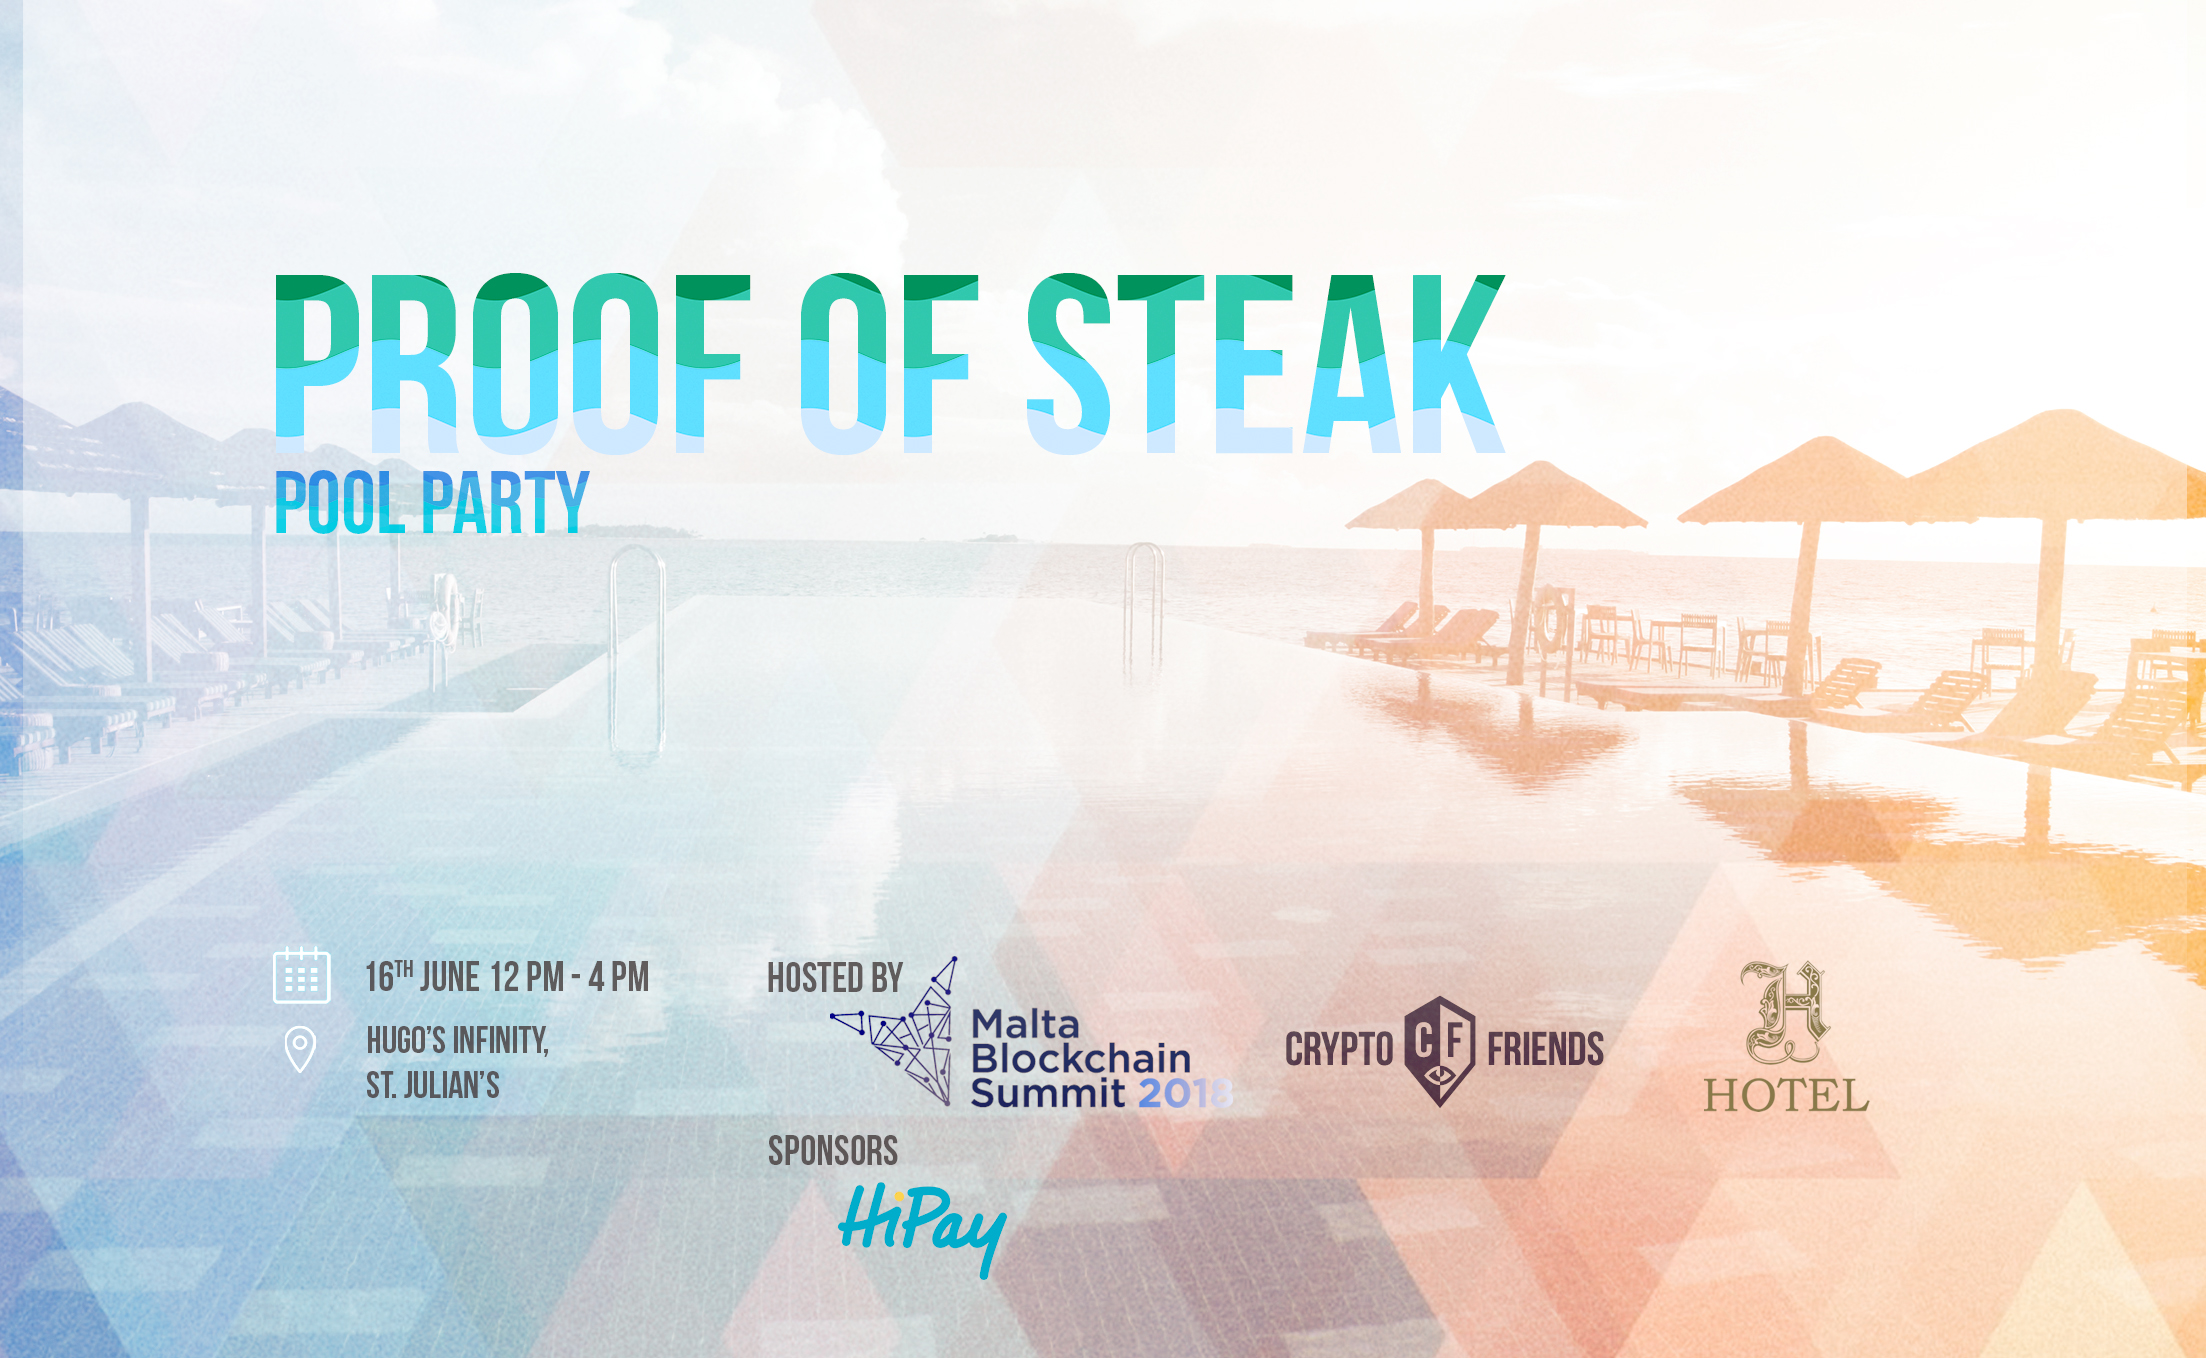 Malta Blockchain Summit Proof of Steak Pool Party Hugos